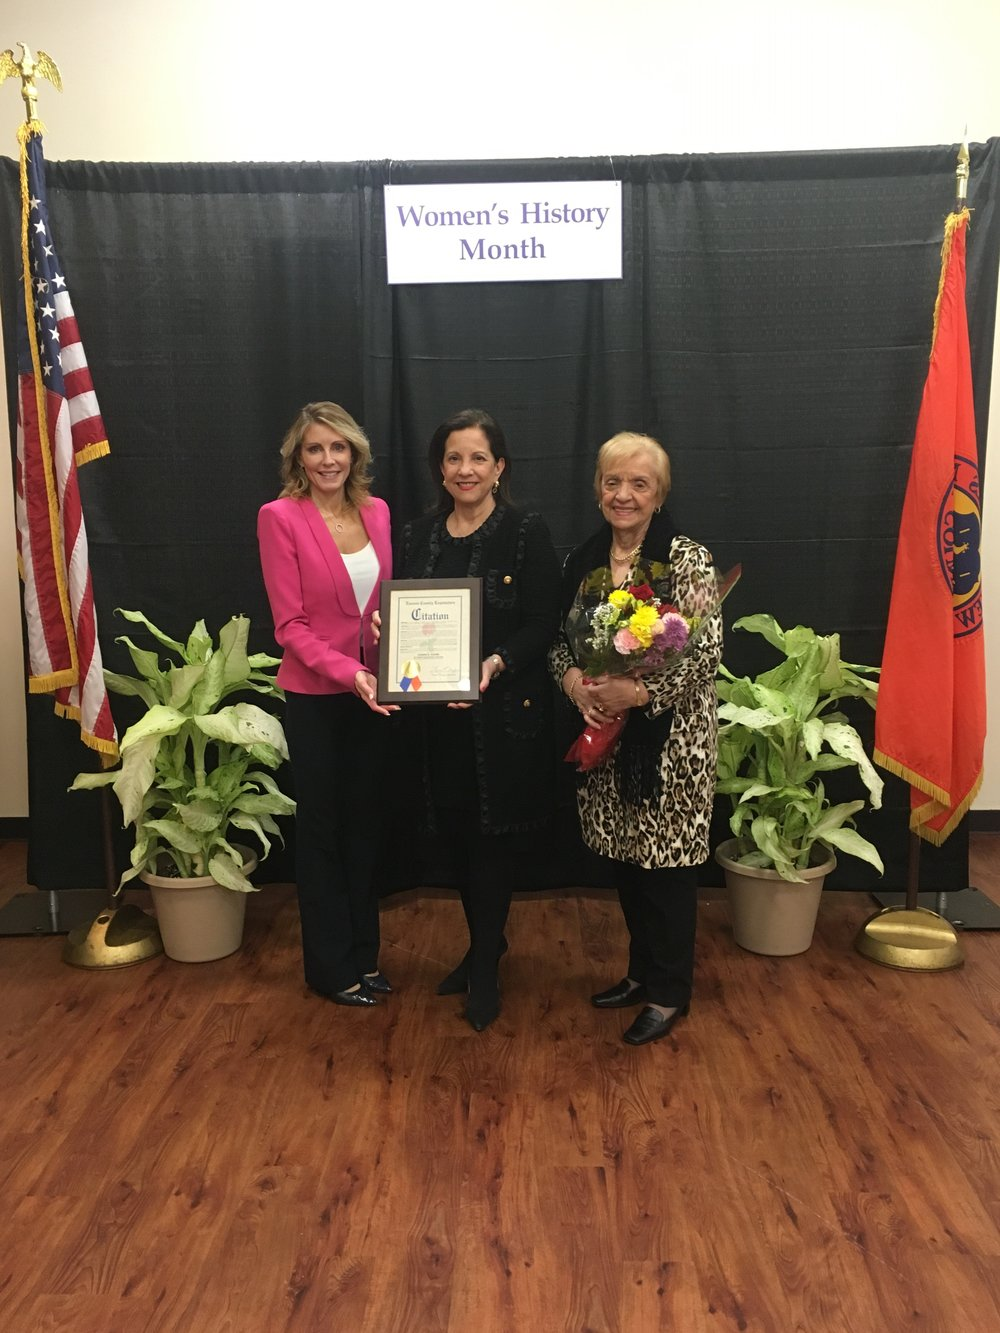 Nassau County Legislator Laura Schaefer, Joanne K. Adams, Antonia Kourepinos (Joanne's mother)